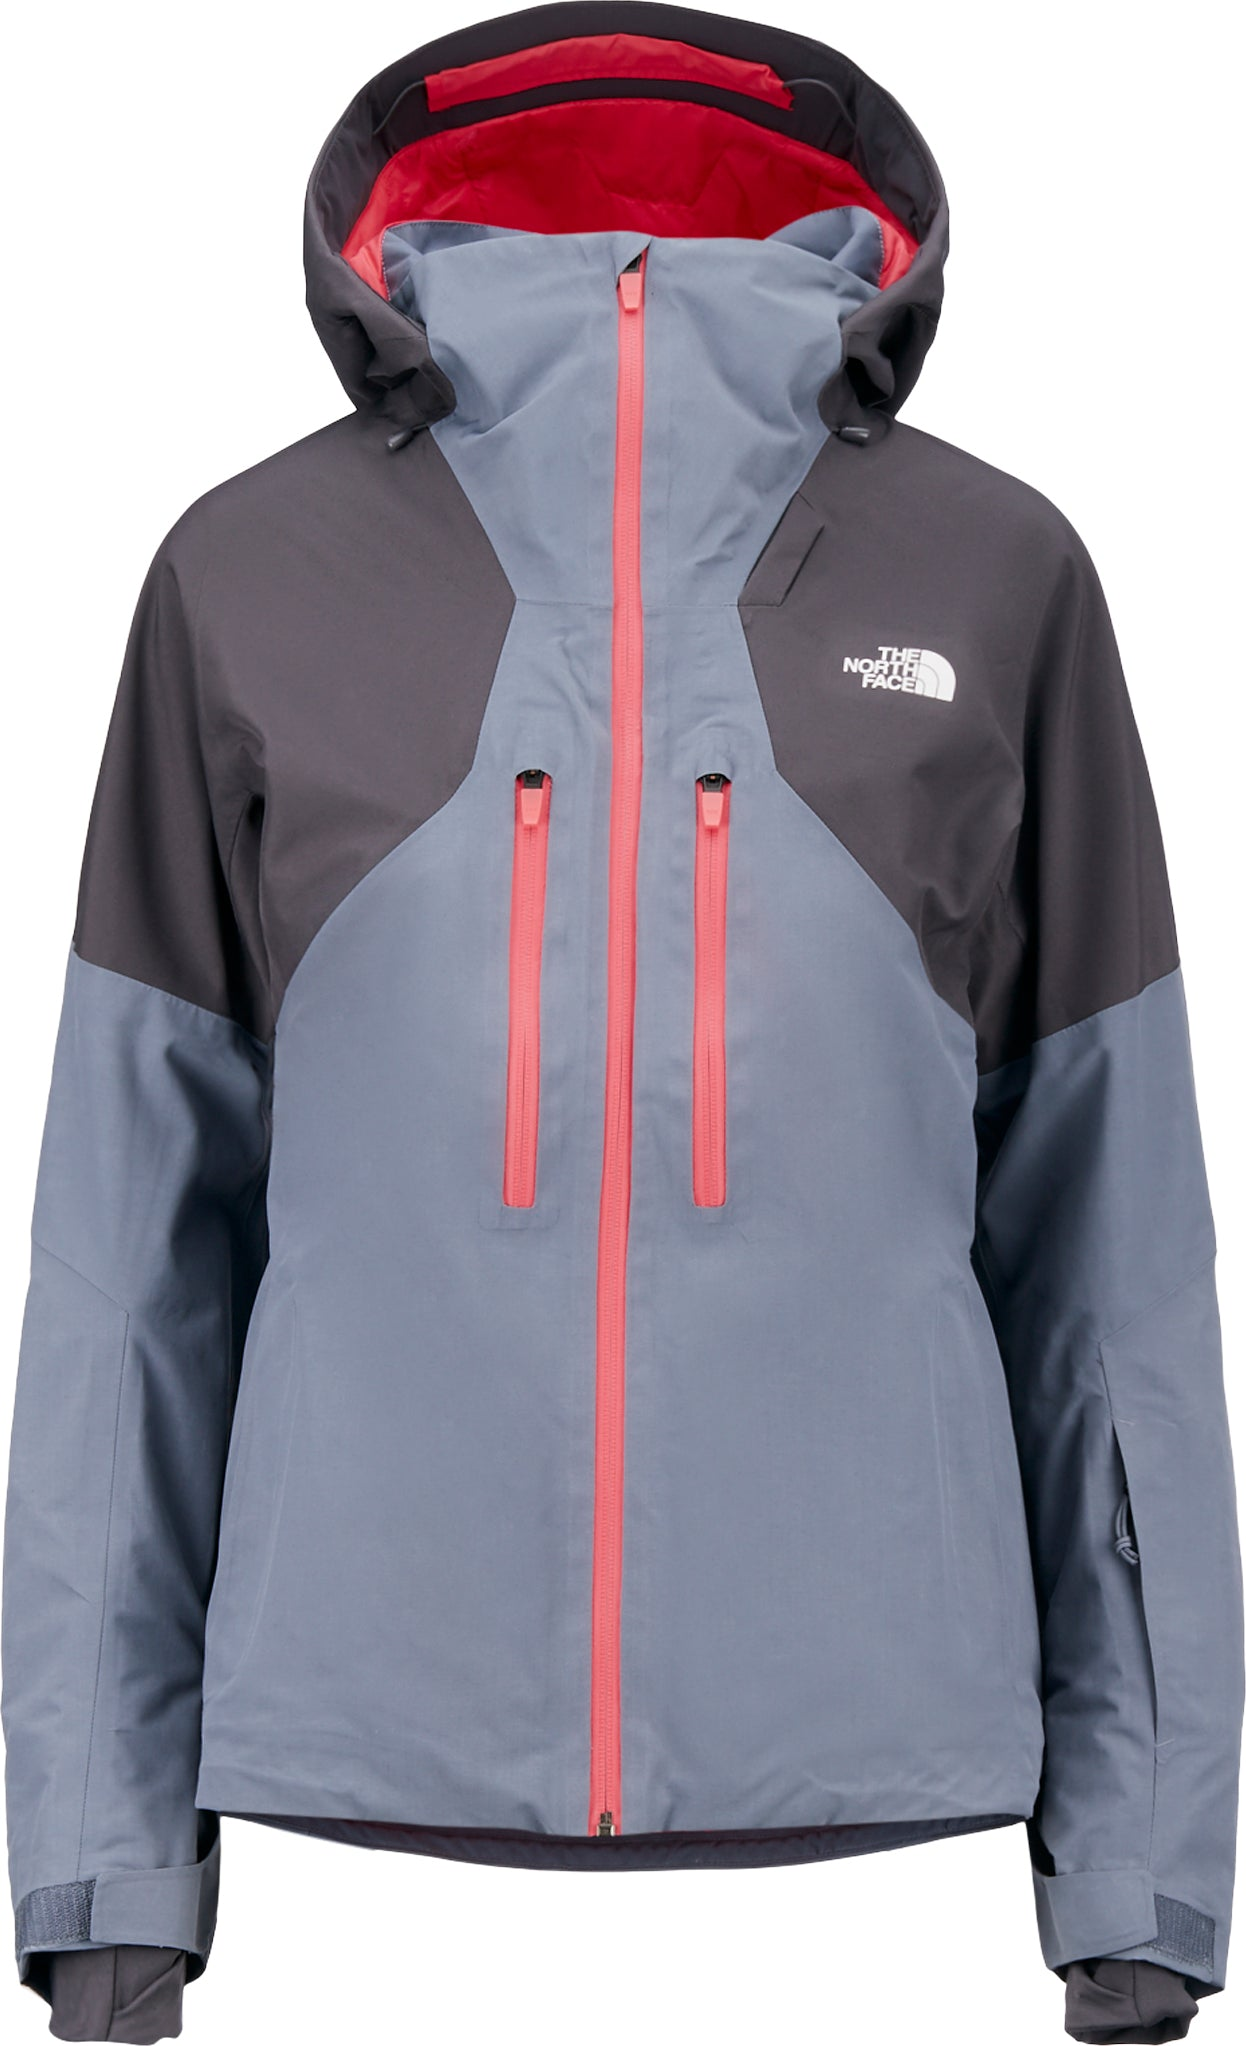 af169f7591 The North Face Powder Guide Jacket - Women's | The Last Hunt